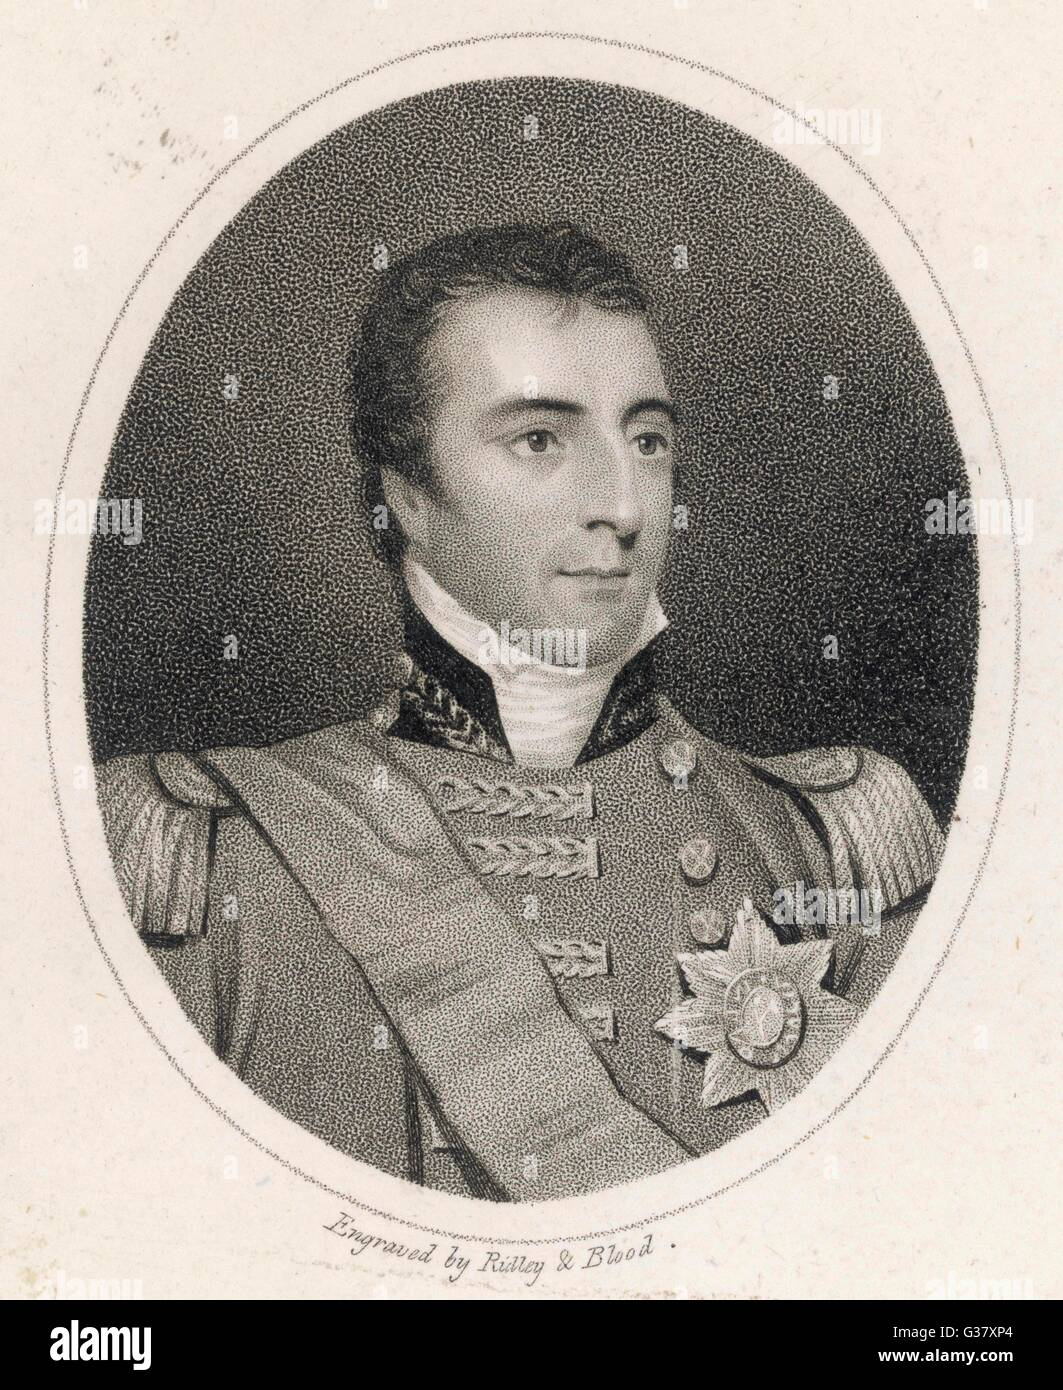 Field Marshall Arthur Wellesley, 1st Duke of Wellington, (1769-1852), British general and statesman, known as the - Stock Image